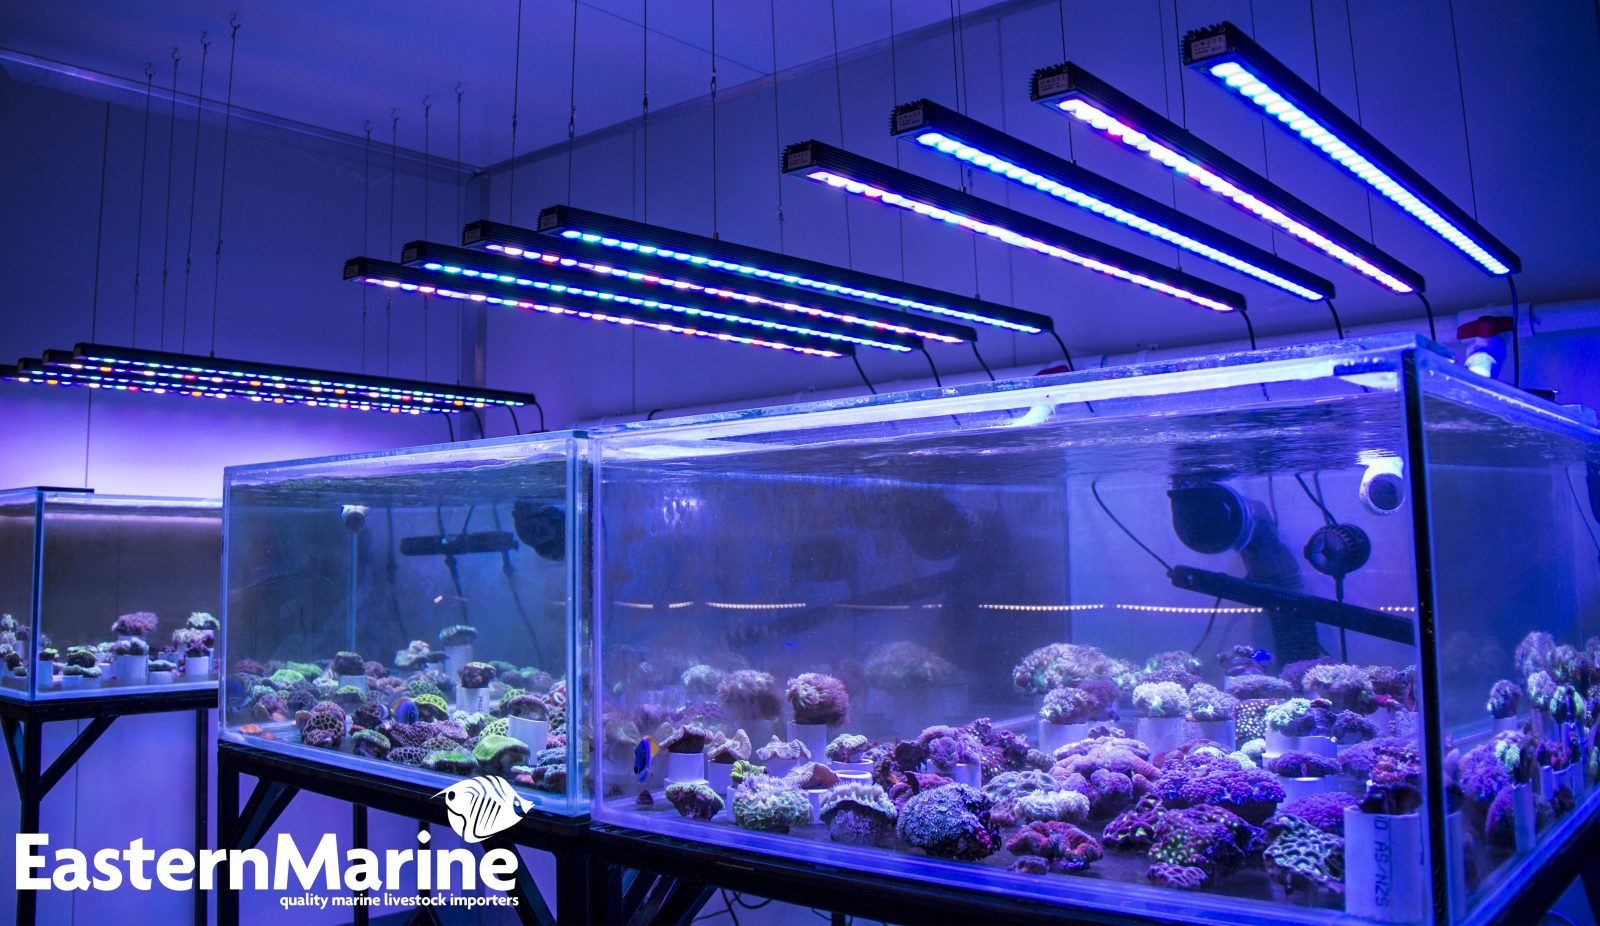 Iluminación para acuario Orphek OR 120 Bar LED